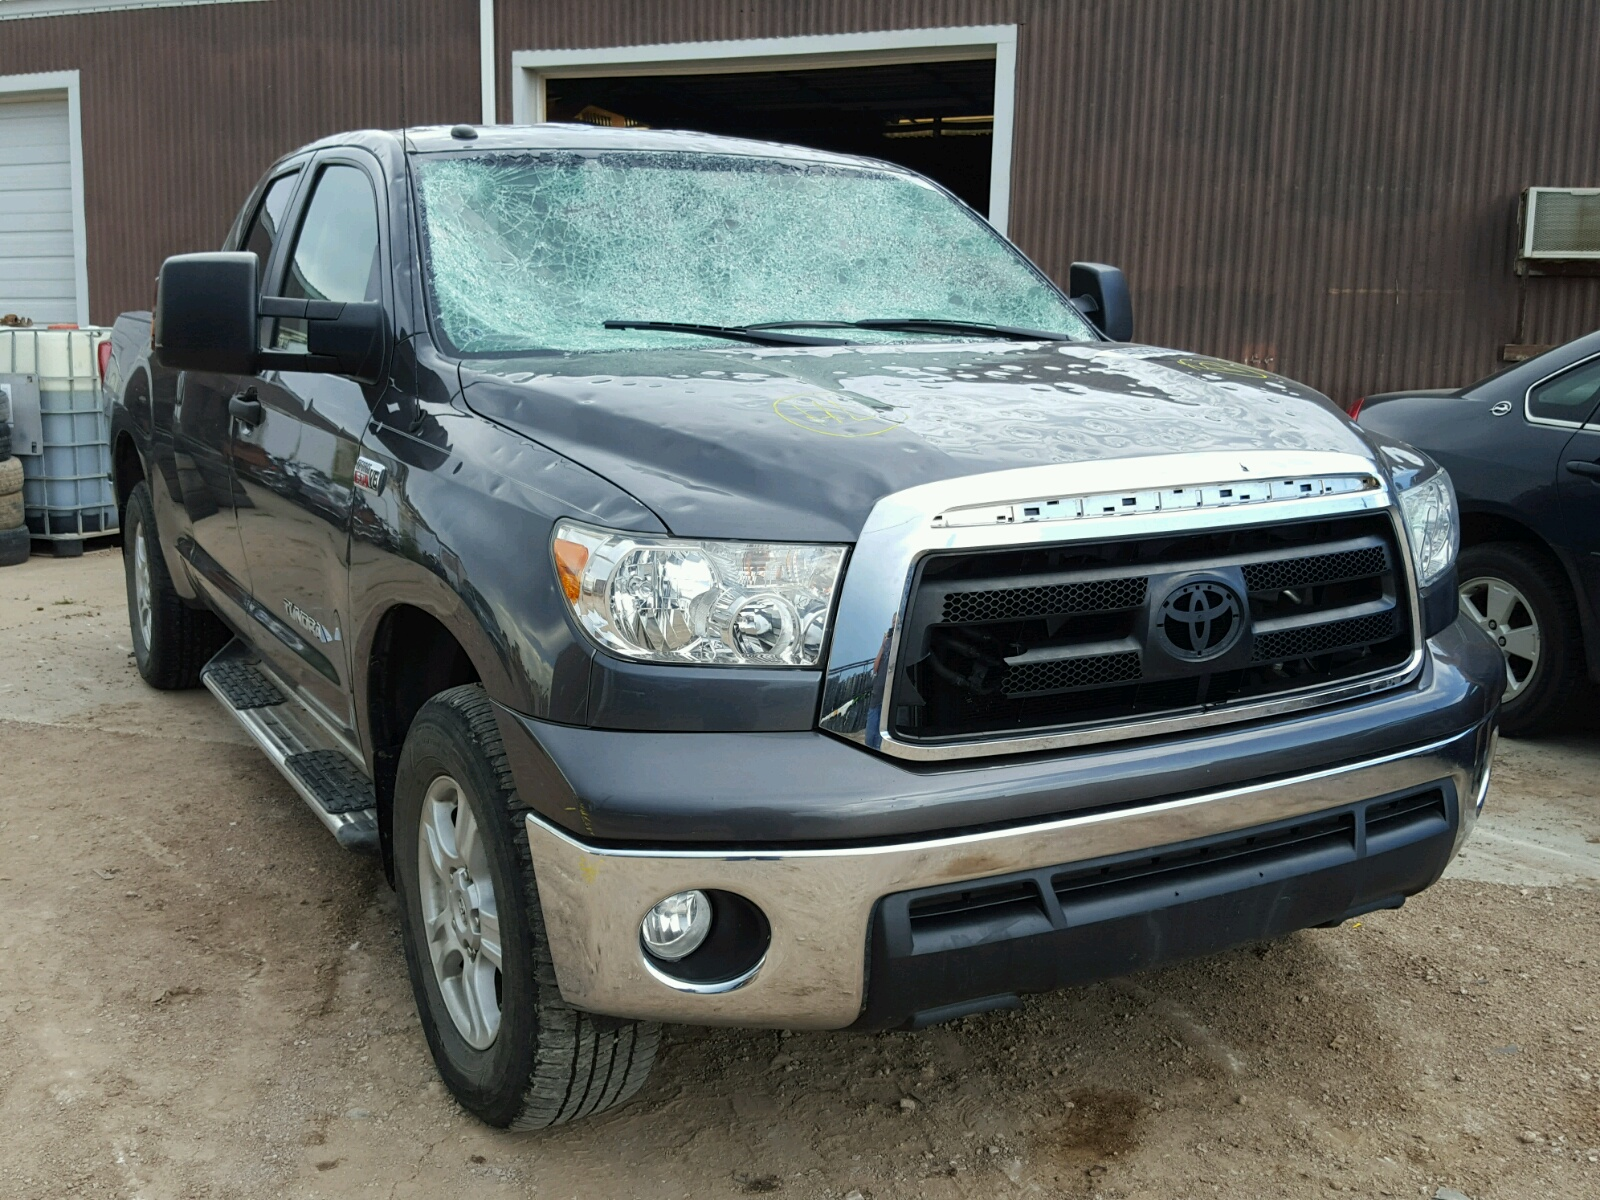 2013 Toyota Tundra DOU for sale at Copart Billings MT Lot